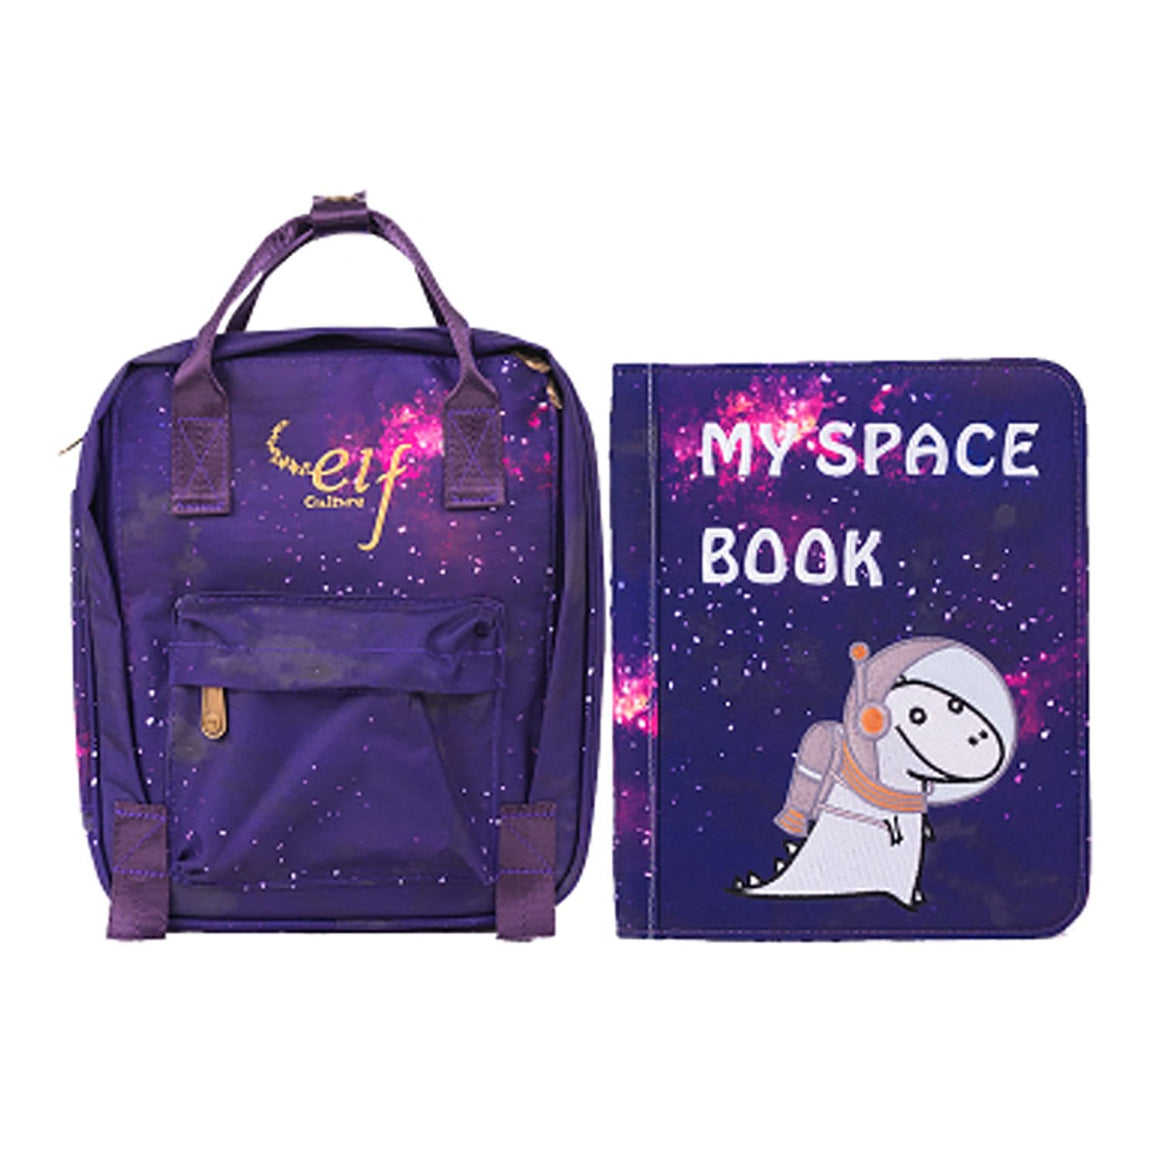 ELF Culture My First Book 3 – My Space Book - Galaxy Purple (蒙特梭利布書- Book 3 太空地理)宇宙紫(特別版)